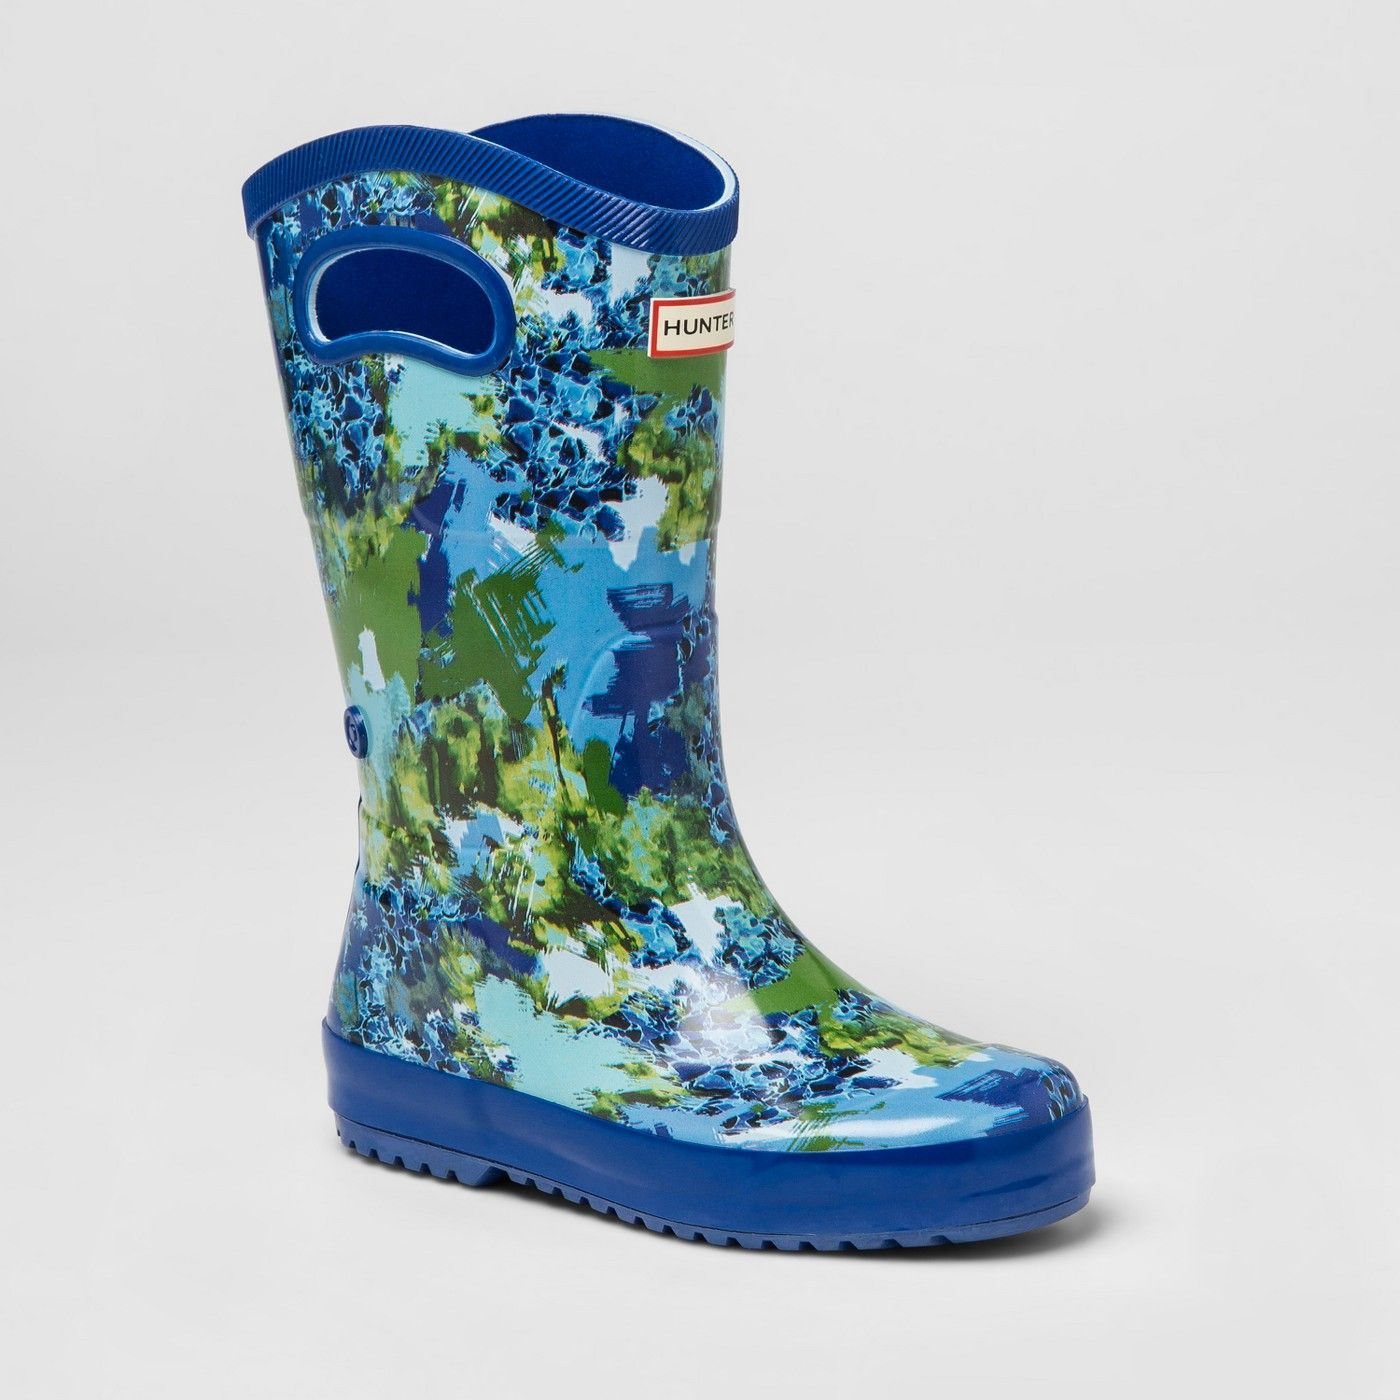 b4e6fb39e53 12 crazy patterned rain boots for toddlers, all under $30. Including ...